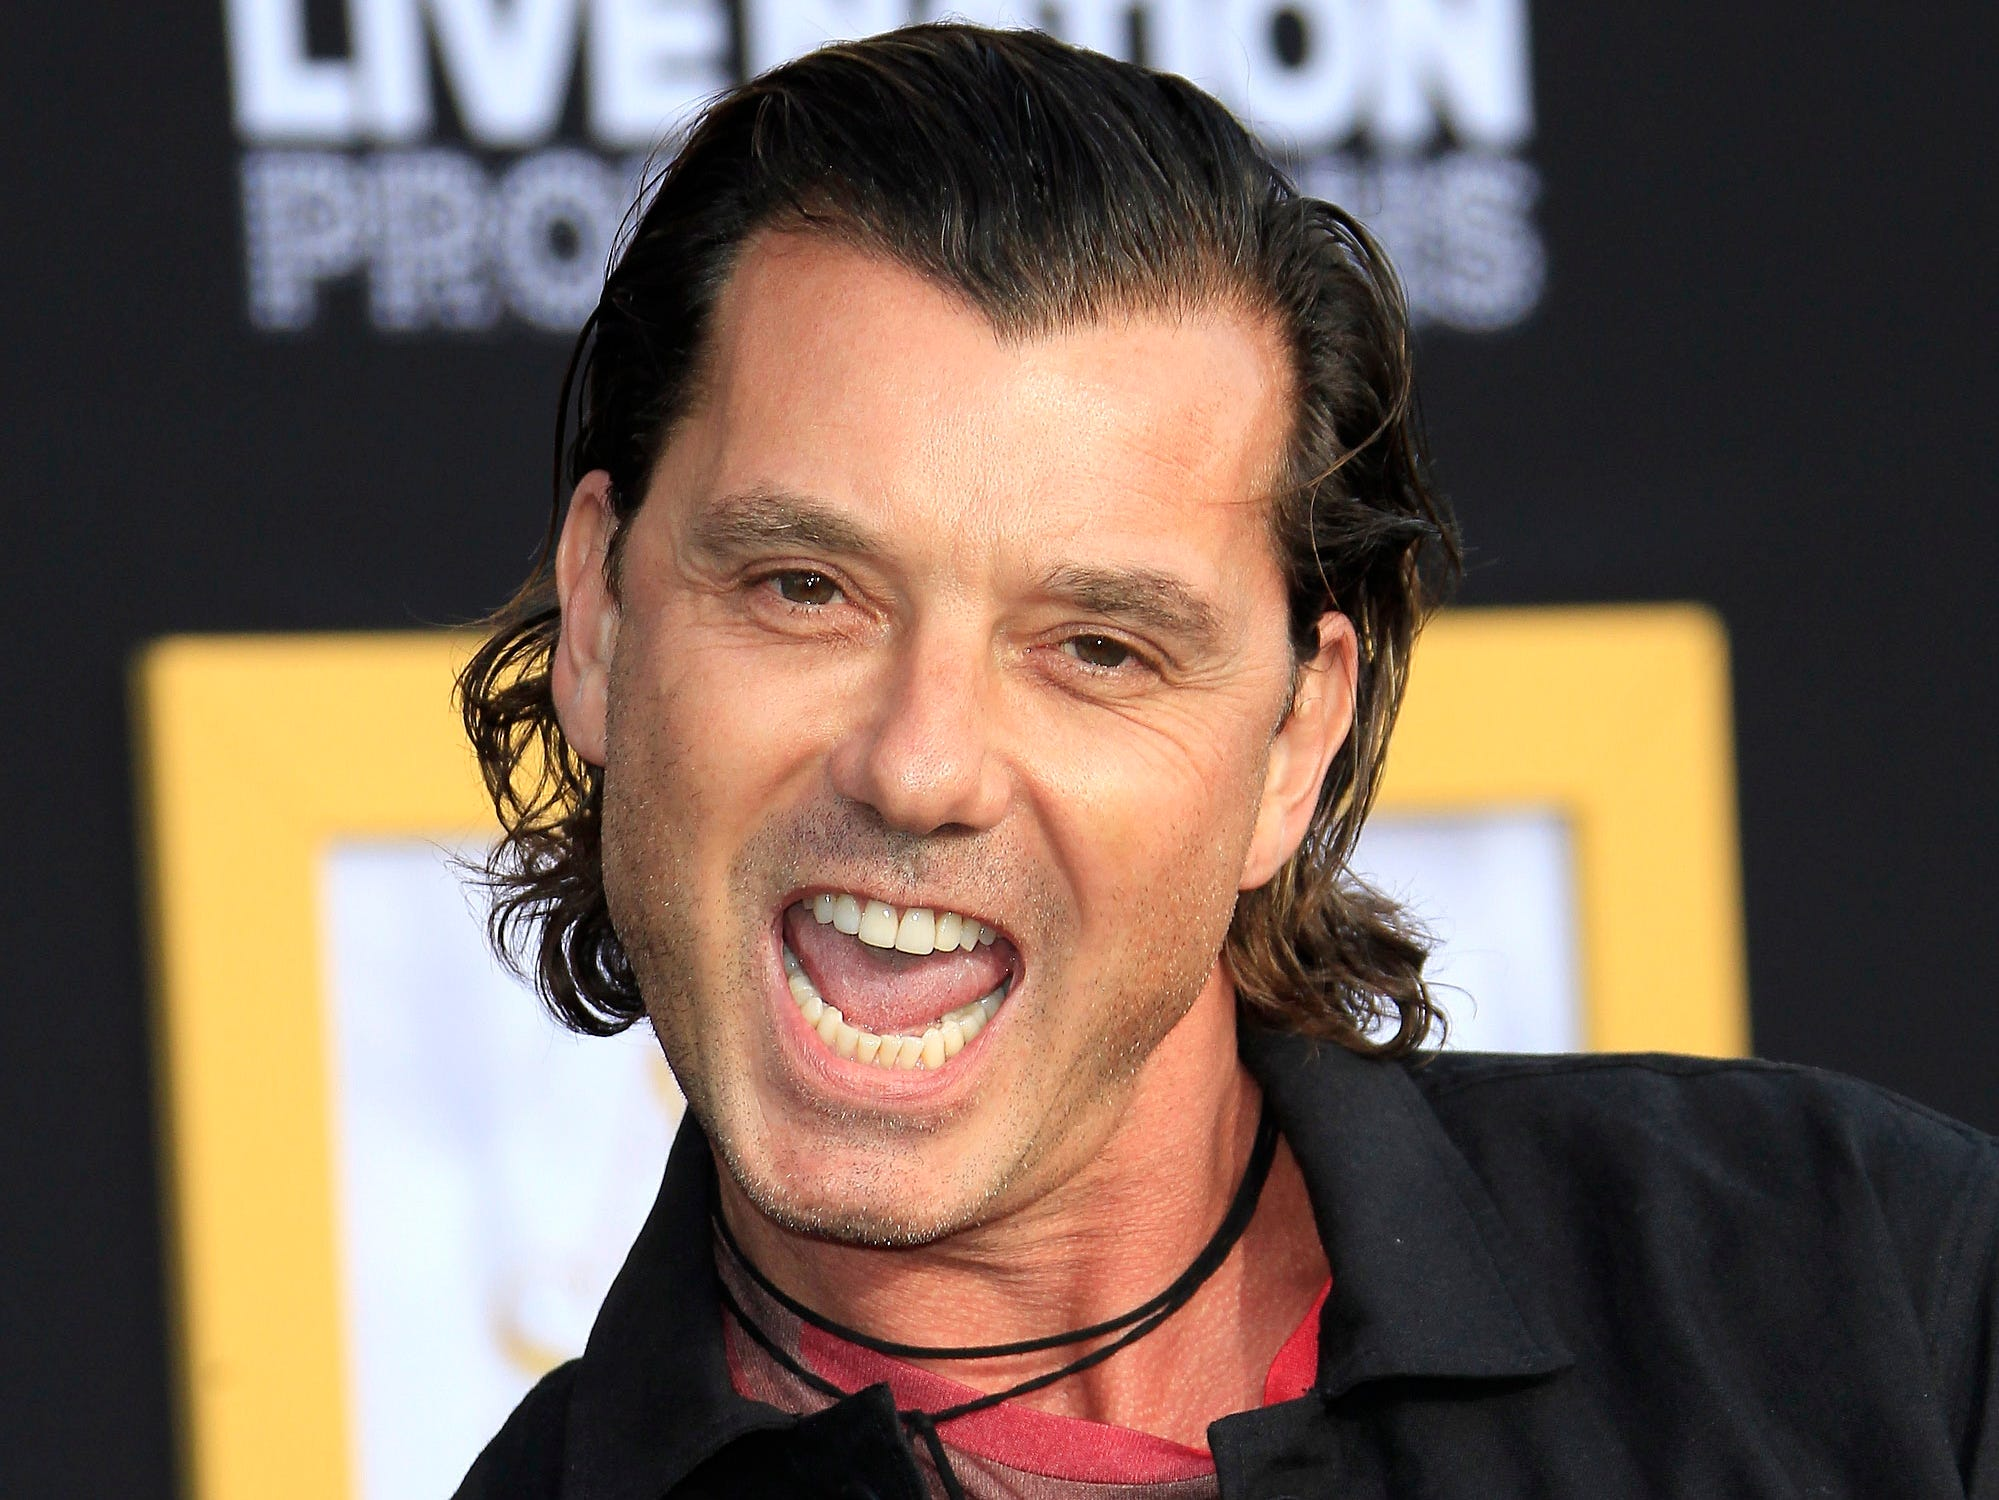 epa07044897 US singer Gavin Rossdale arrives at the premiere of the film 'A Star Is Born' at the Shrine Auditorium in Los Angeles, California, USA, 24 September 2018. The movie opens in the US on 05 October 2018.  EPA-EFE/NINA PROMMER ORG XMIT: NPX01